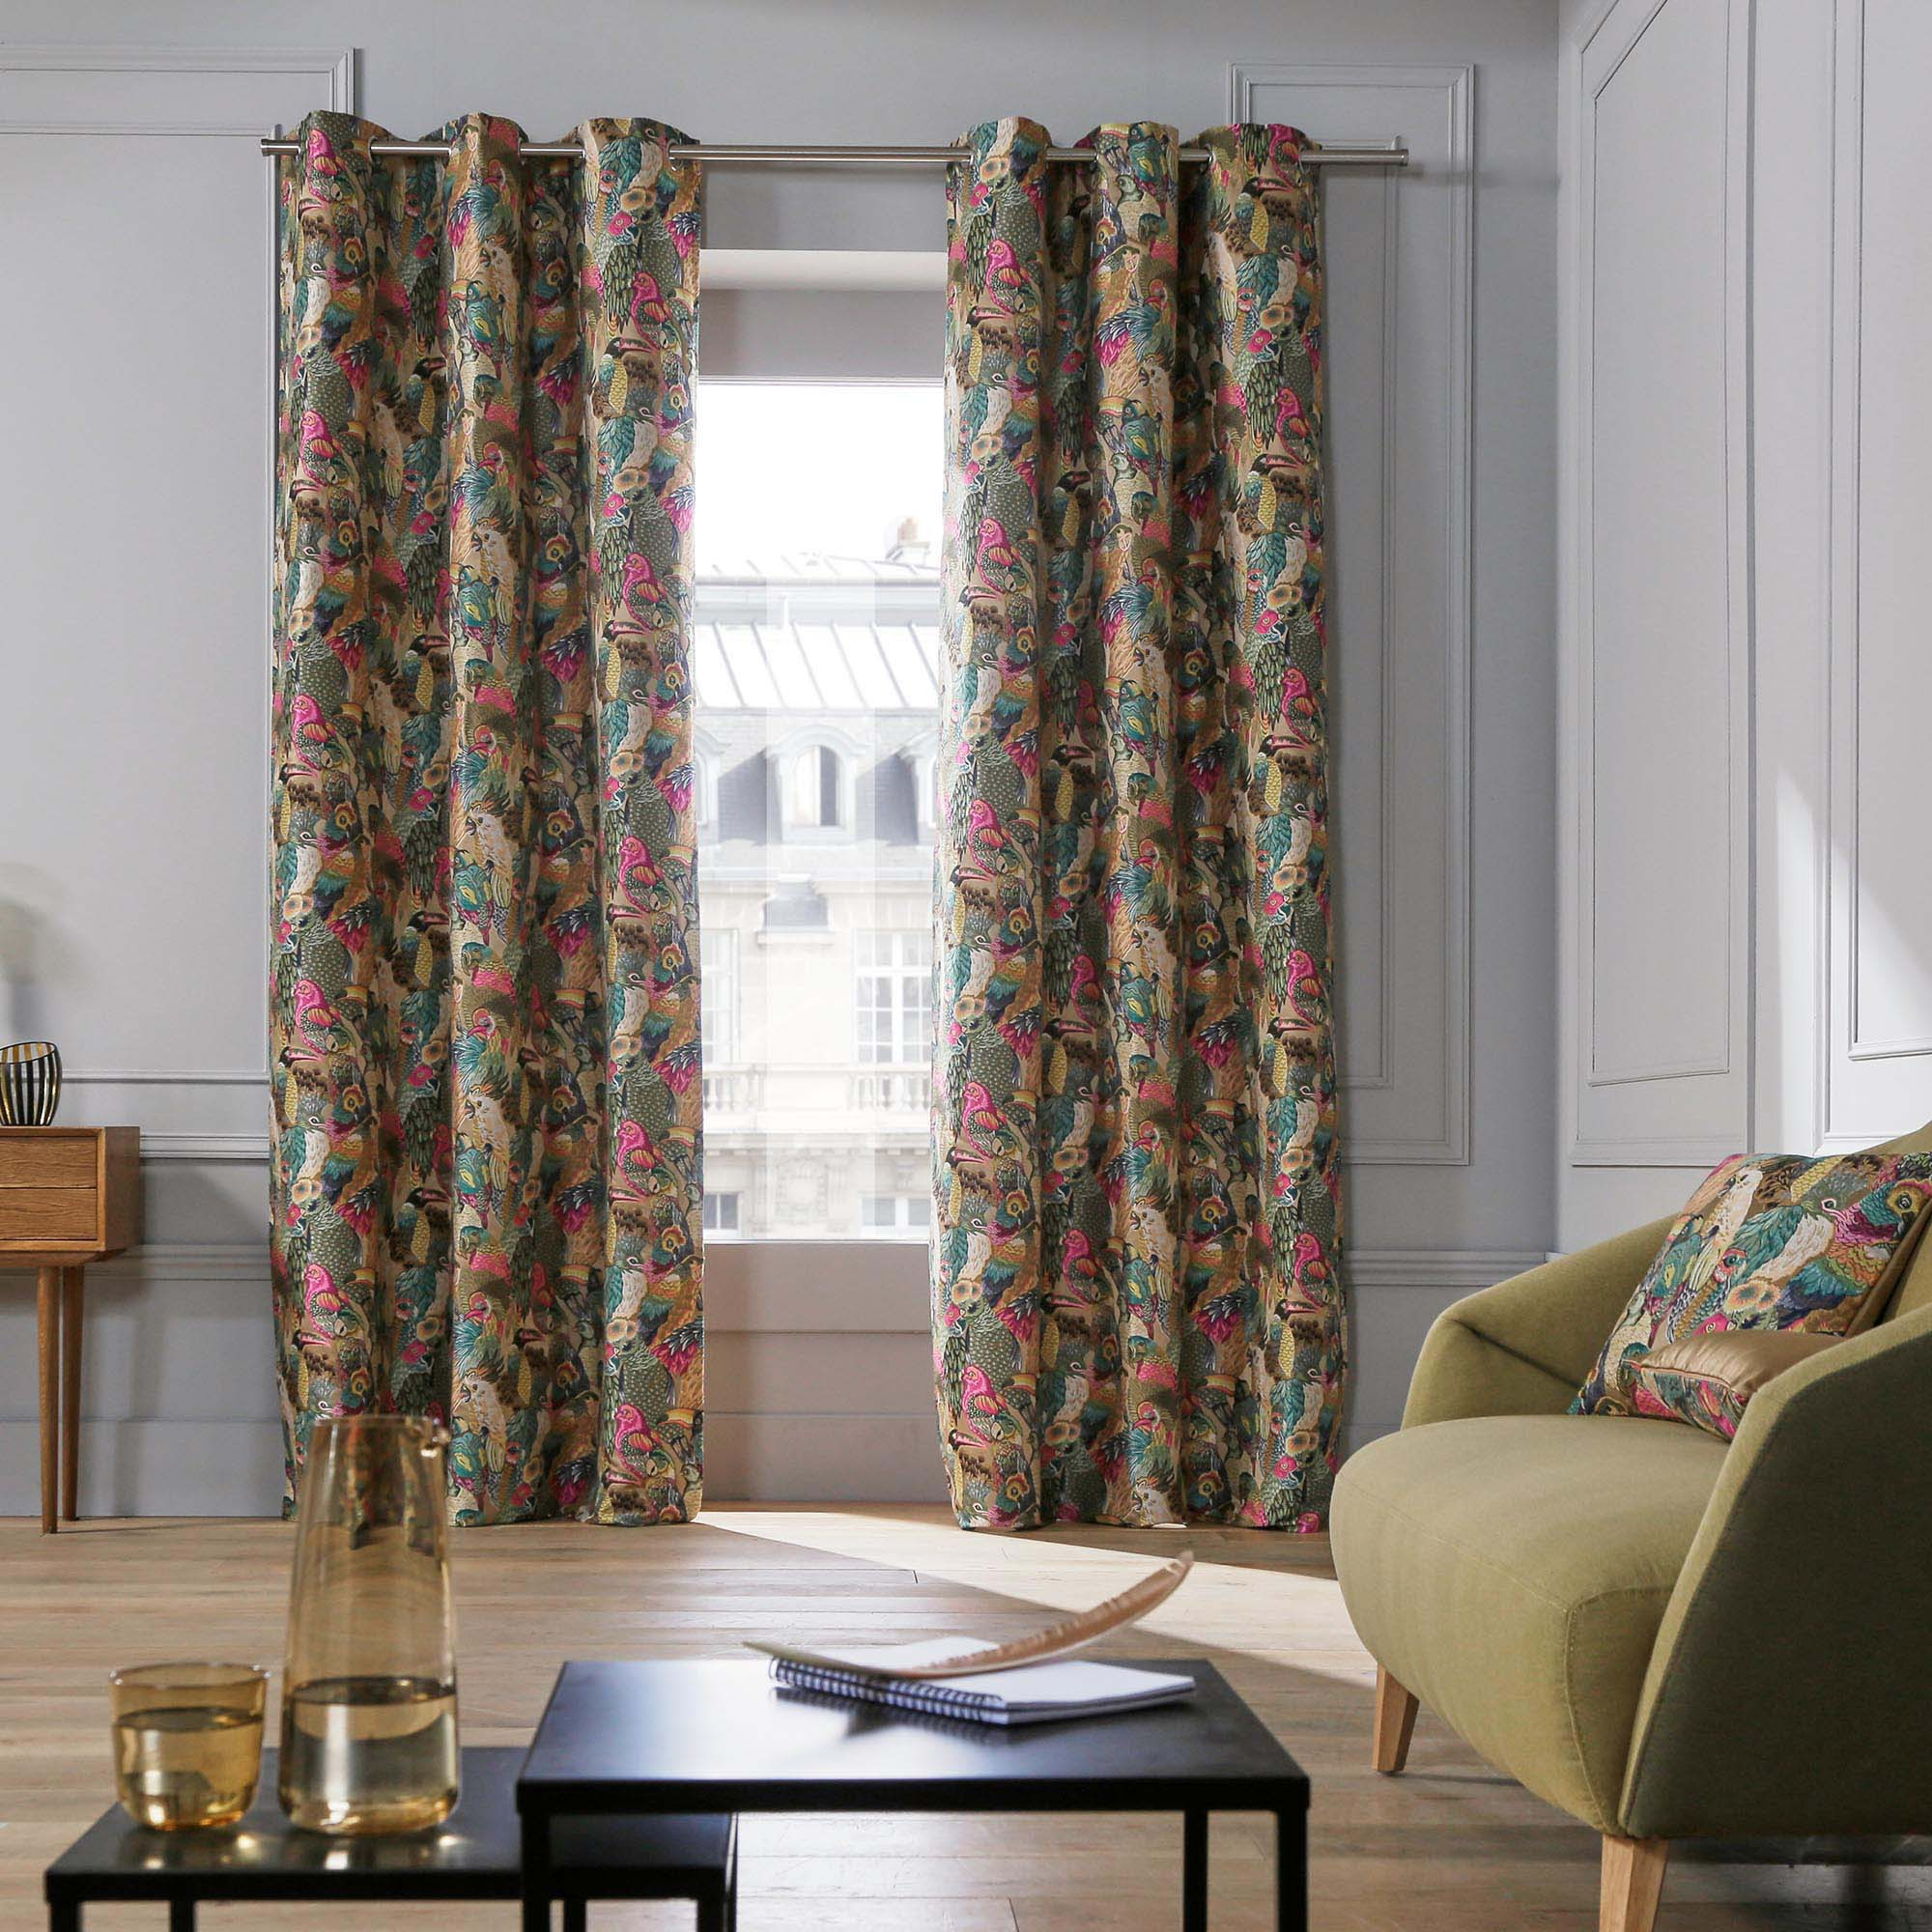 grommets blackout com white kitchen kmart sears curtains yerwat outdoor patterned at clearance cafe curtain with